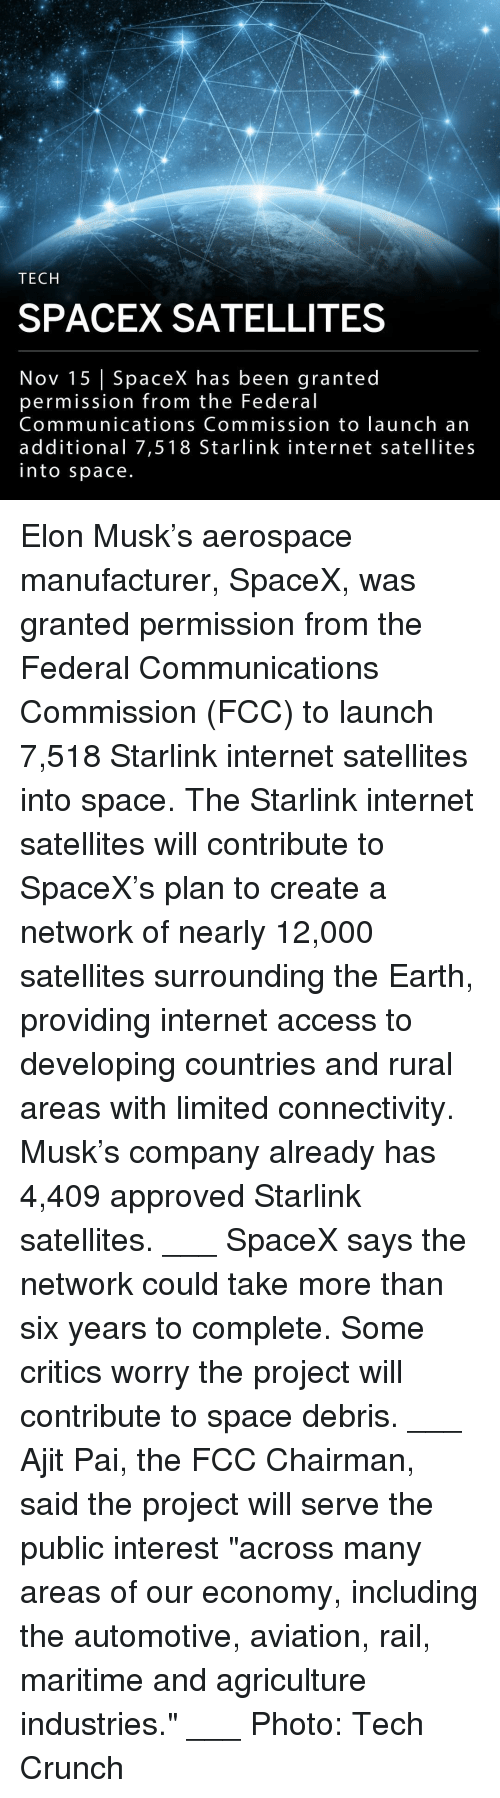 "Internet, Memes, and Access: TECH  SPACEX SATELLITES  Nov 15 | SpaceX has been granted  permission from the Federal  Communications Commission to launch an  additional 7,518 Starlink internet satellites  into space Elon Musk's aerospace manufacturer, SpaceX, was granted permission from the Federal Communications Commission (FCC) to launch 7,518 Starlink internet satellites into space. The Starlink internet satellites will contribute to SpaceX's plan to create a network of nearly 12,000 satellites surrounding the Earth, providing internet access to developing countries and rural areas with limited connectivity. Musk's company already has 4,409 approved Starlink satellites. ___ SpaceX says the network could take more than six years to complete. Some critics worry the project will contribute to space debris. ___ Ajit Pai, the FCC Chairman, said the project will serve the public interest ""across many areas of our economy, including the automotive, aviation, rail, maritime and agriculture industries."" ___ Photo: Tech Crunch"